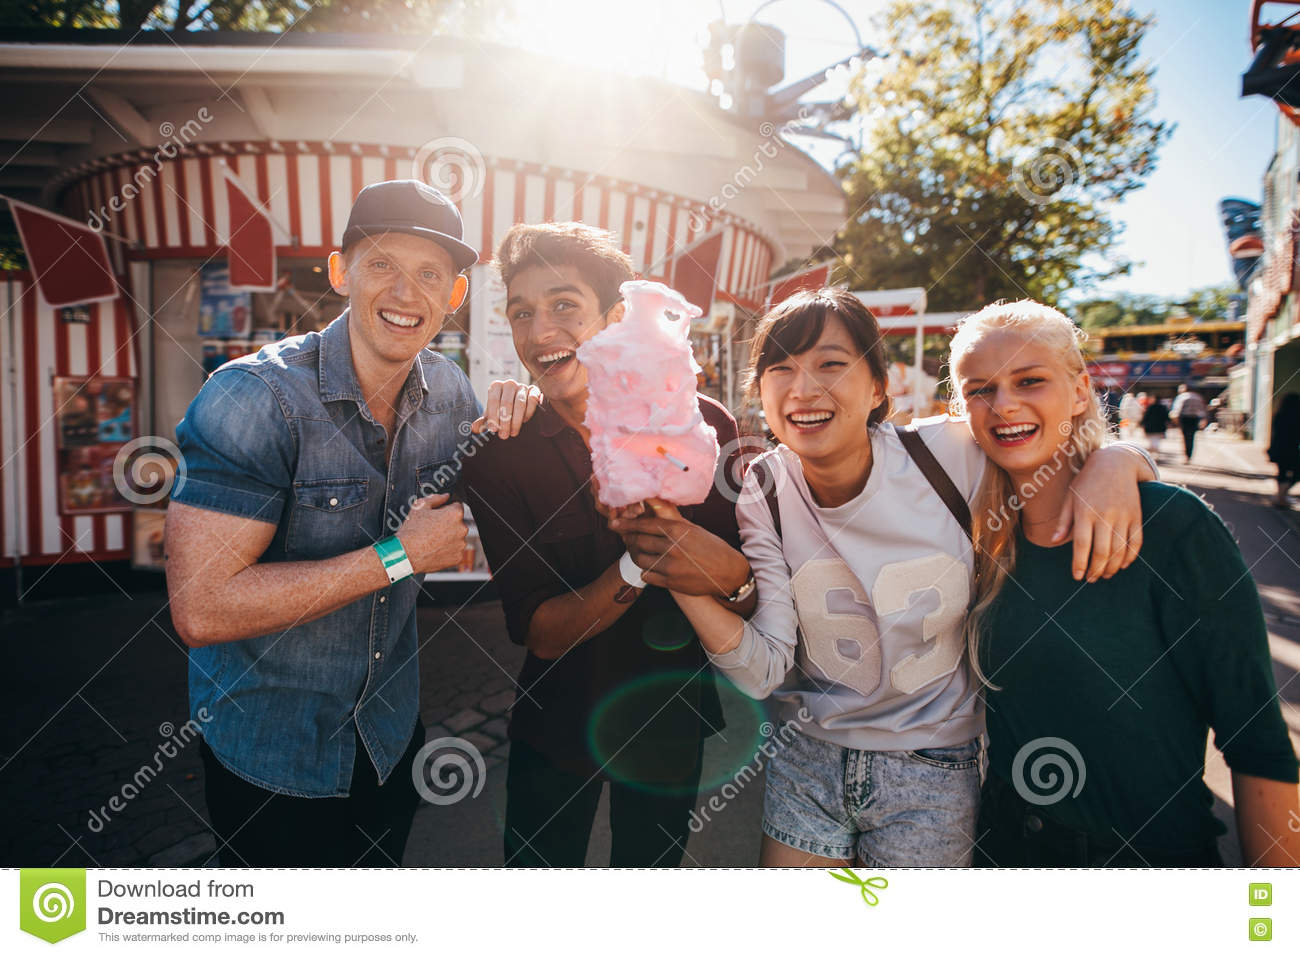 Group of young friends with cotton candy in amusement park